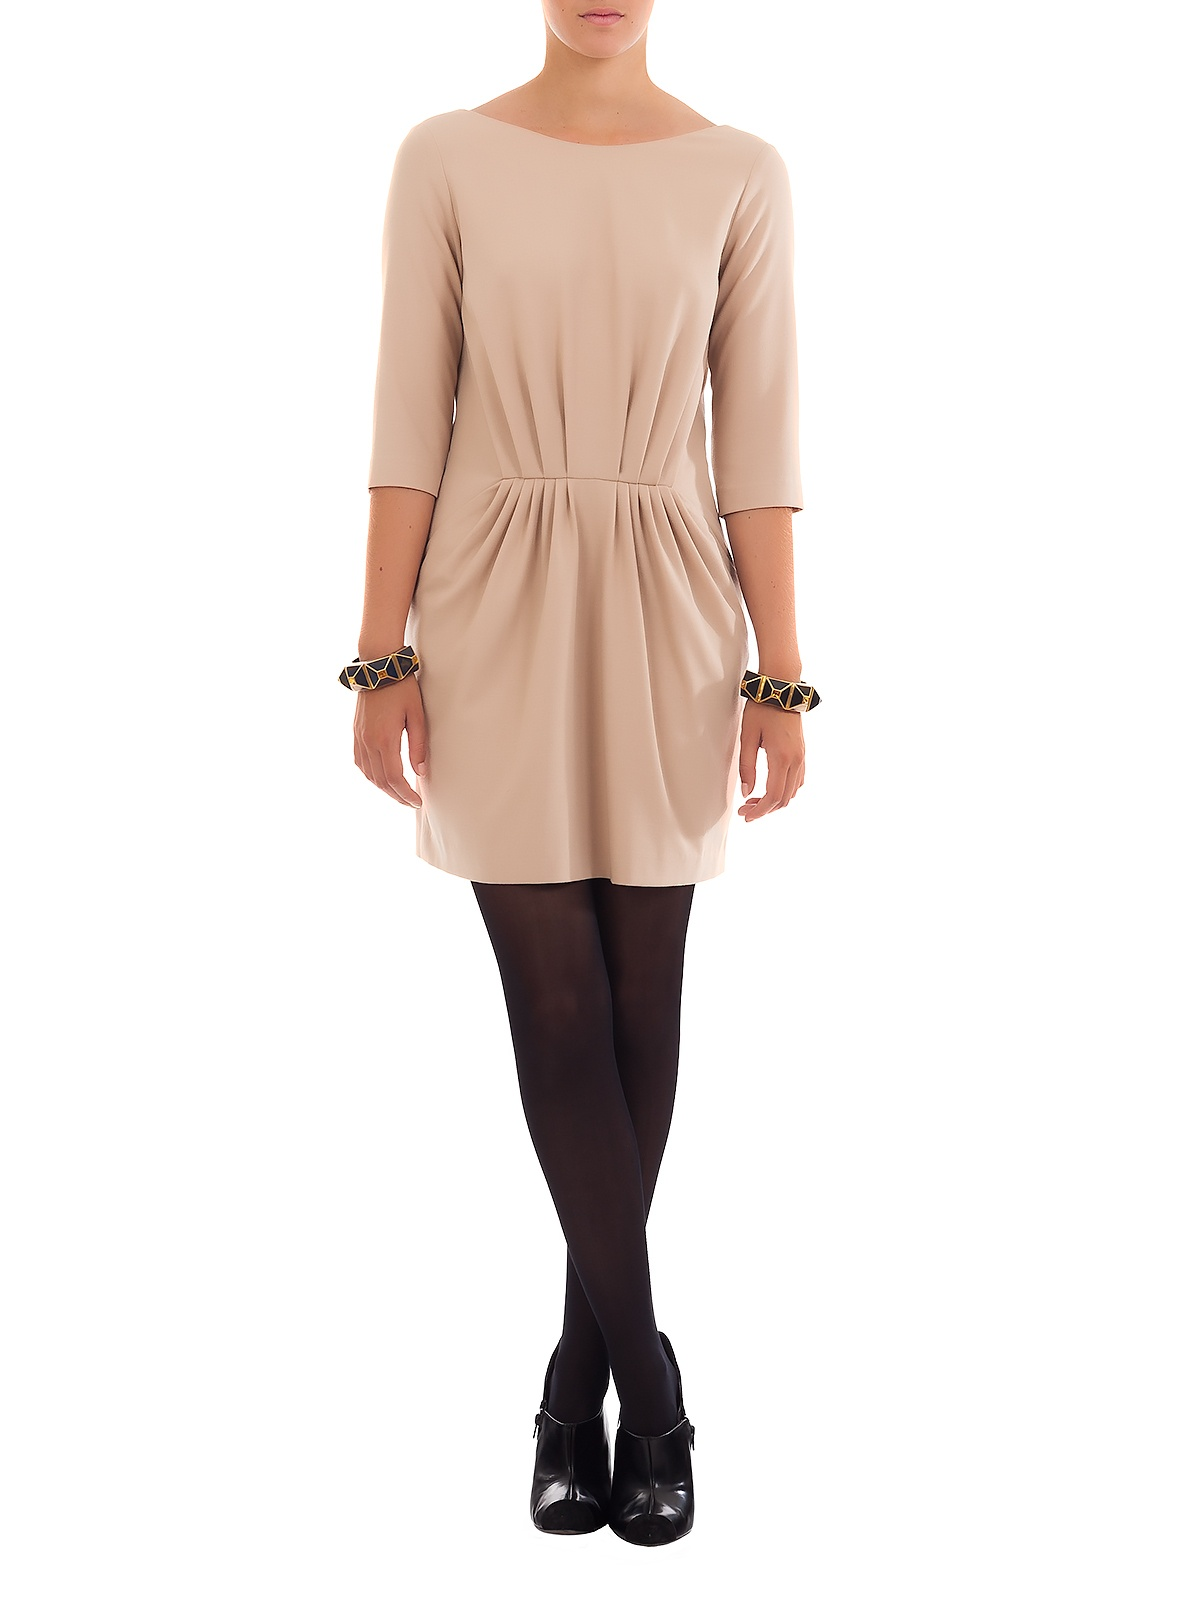 SYMPHONY BEIGE DRESS | GIRISSIMA.COM - Collectible fashion to love and to last